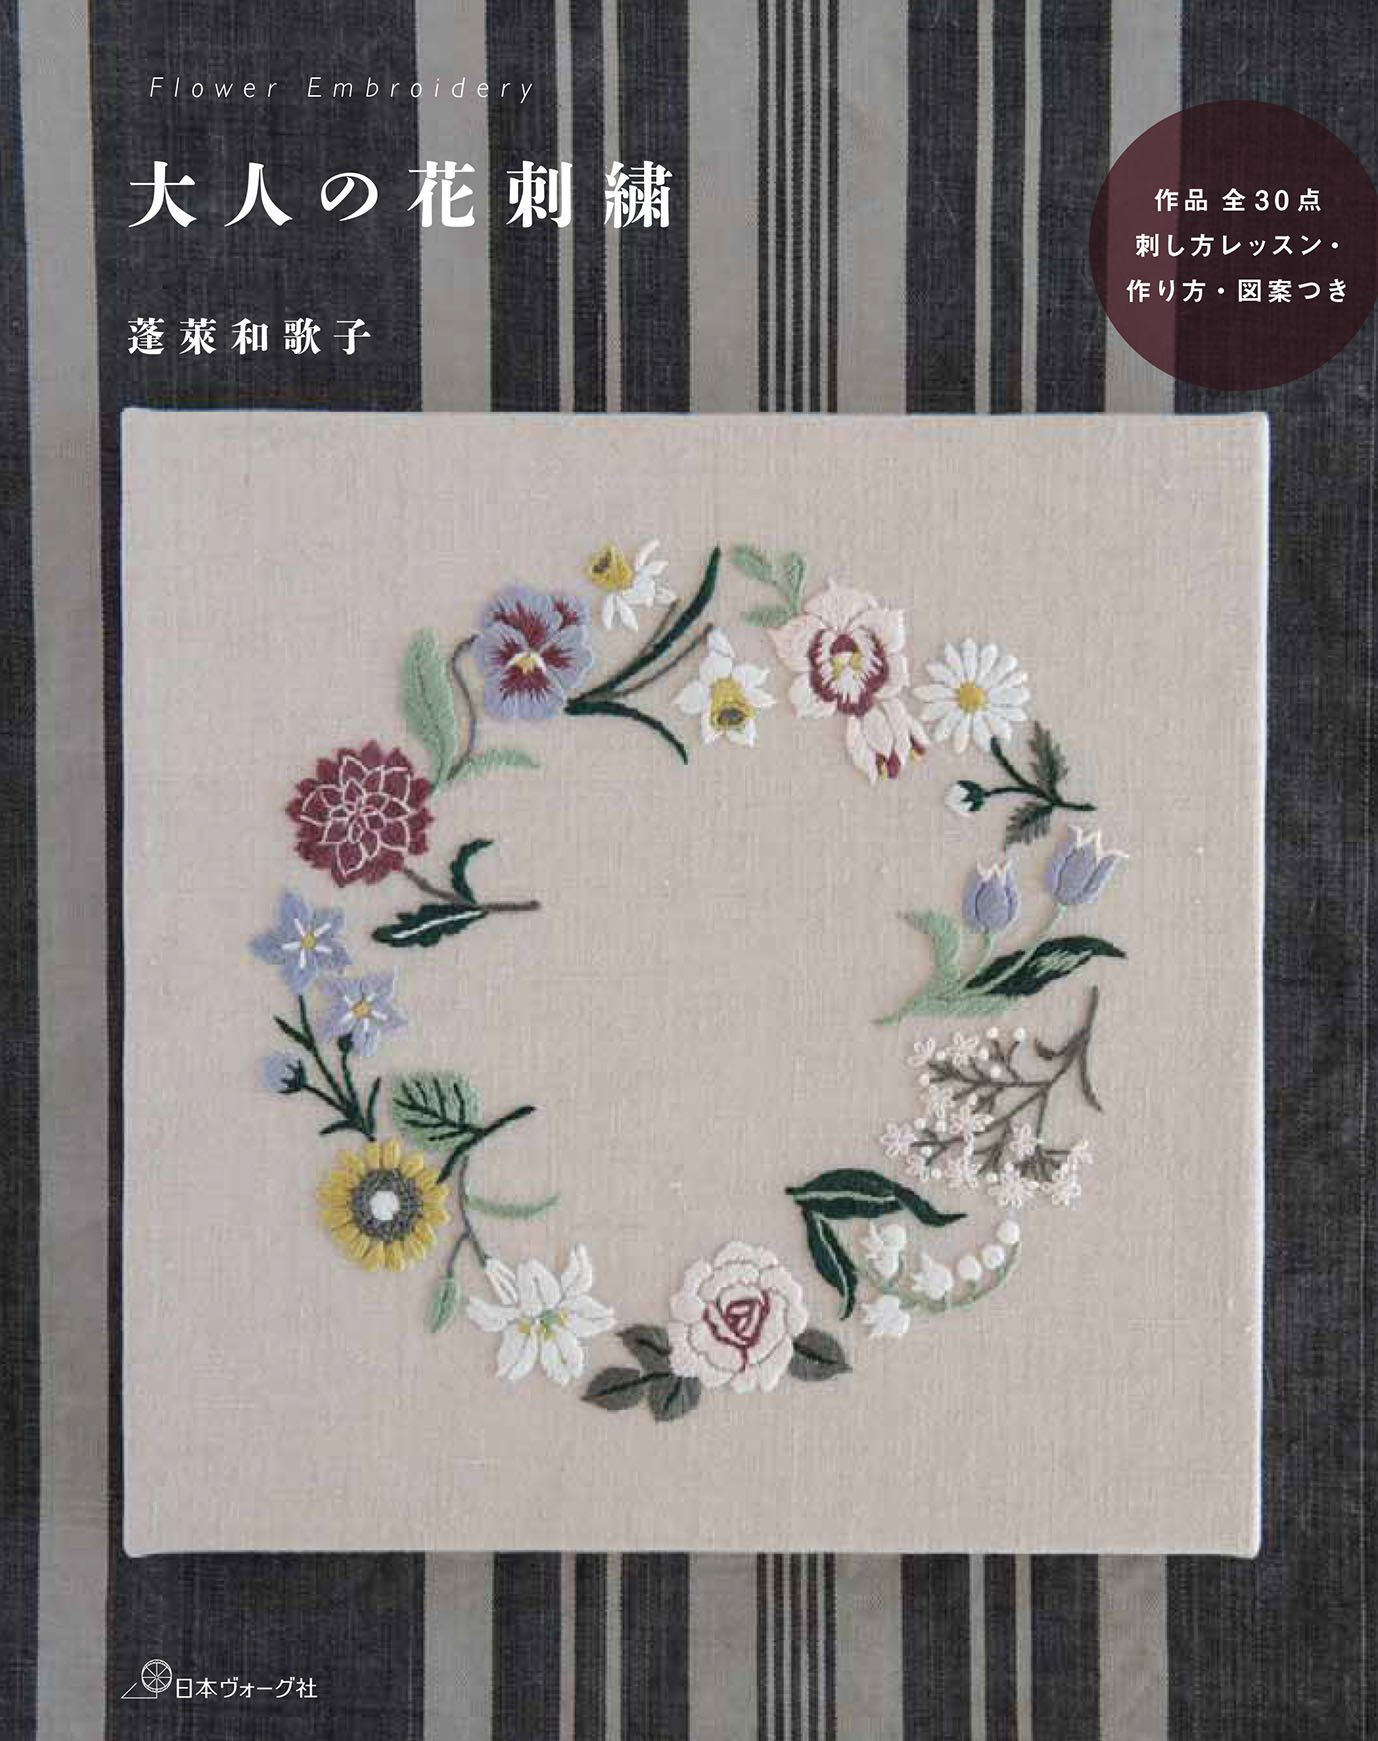 Adult flower embroidery